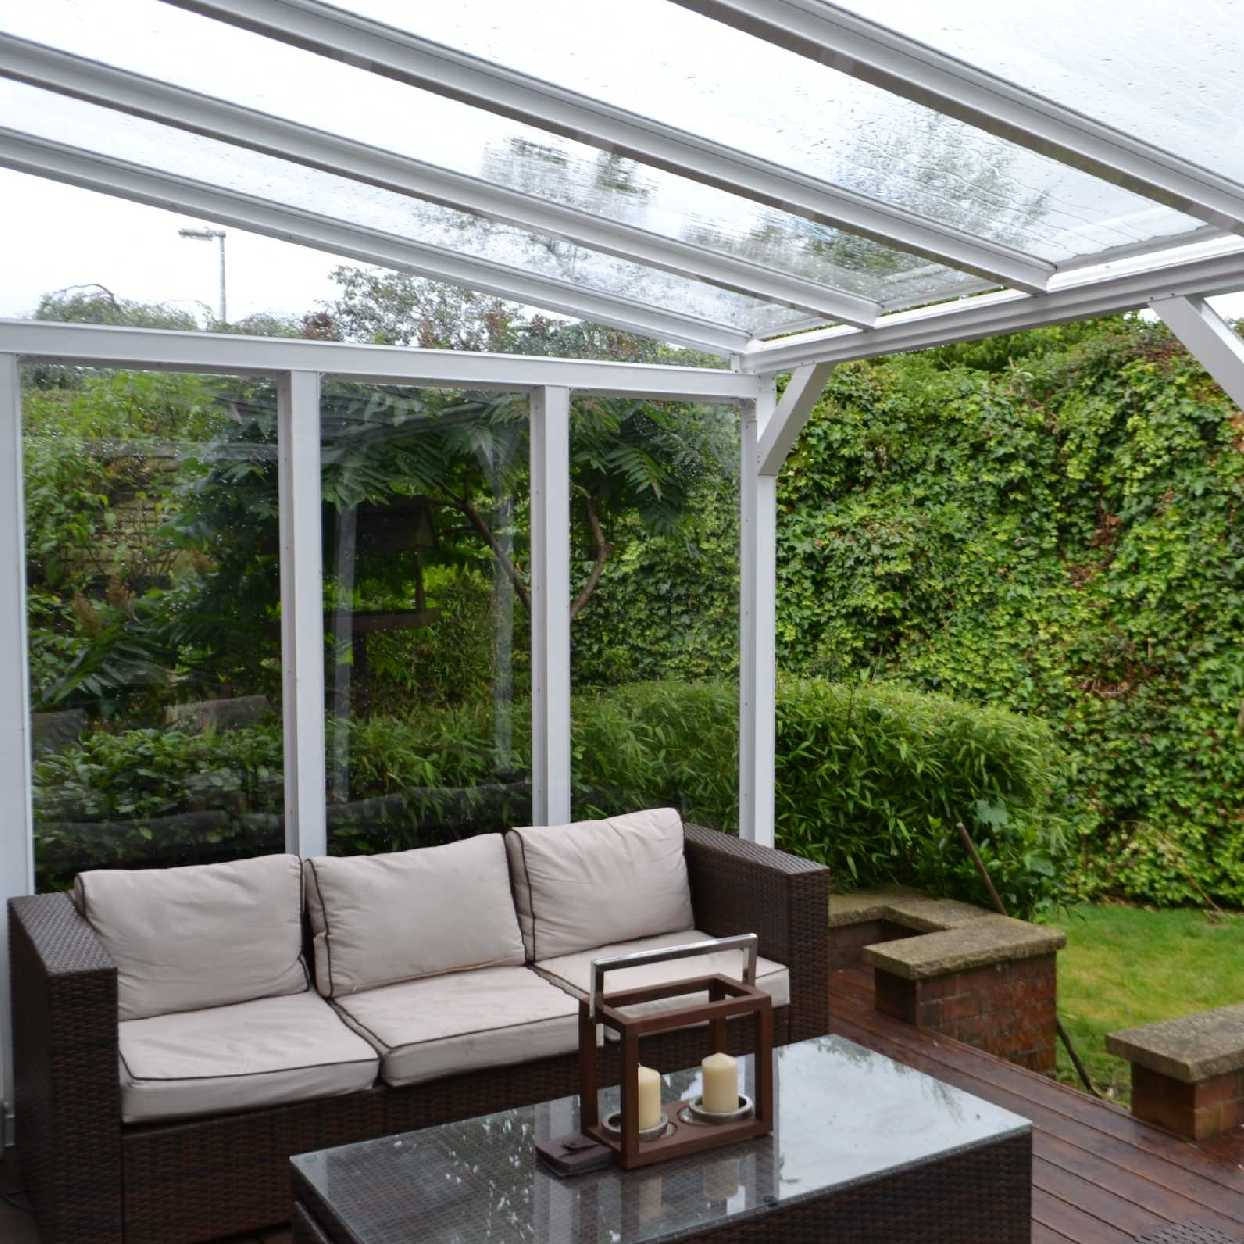 Great selection of Omega Smart White Lean-To Canopy with 16mm Polycarbonate Glazing - 5.2m (W) x 2.5m (P), (3) Supporting Posts